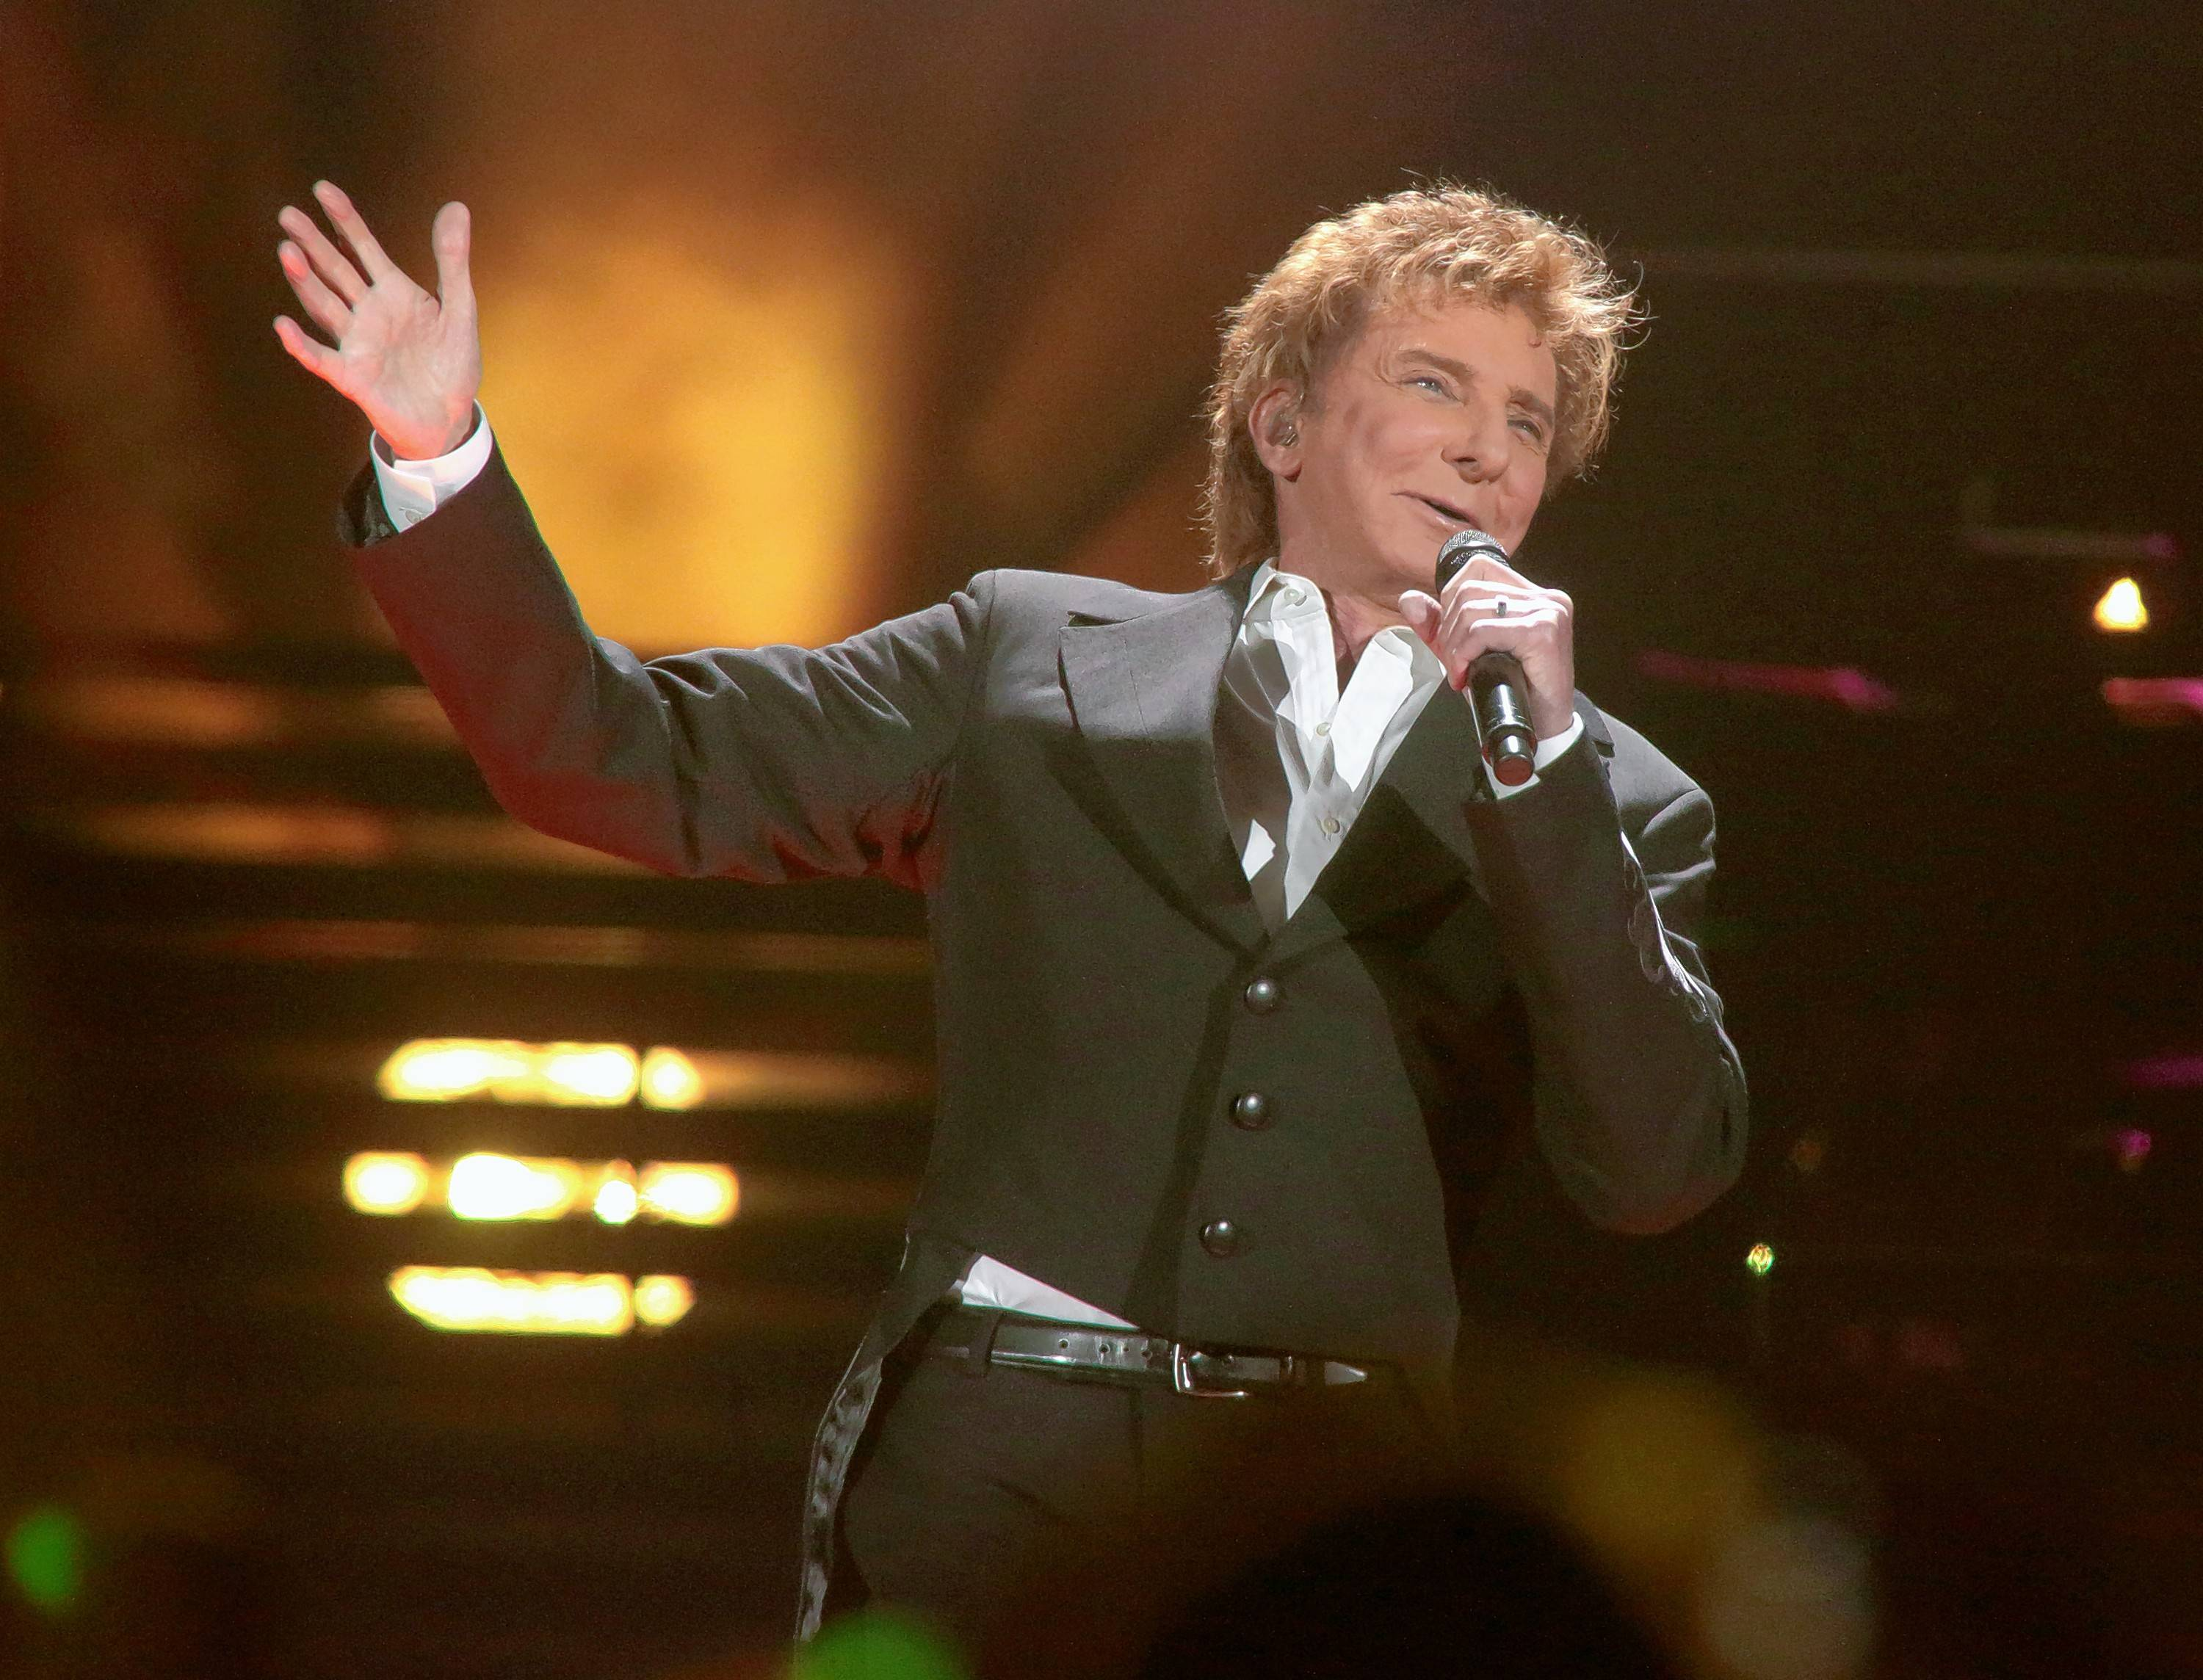 Grammy Award-winner Barry Manilow performs at his rescheduled Allstate Arena concert in Rosemont on Saturday, July 29.